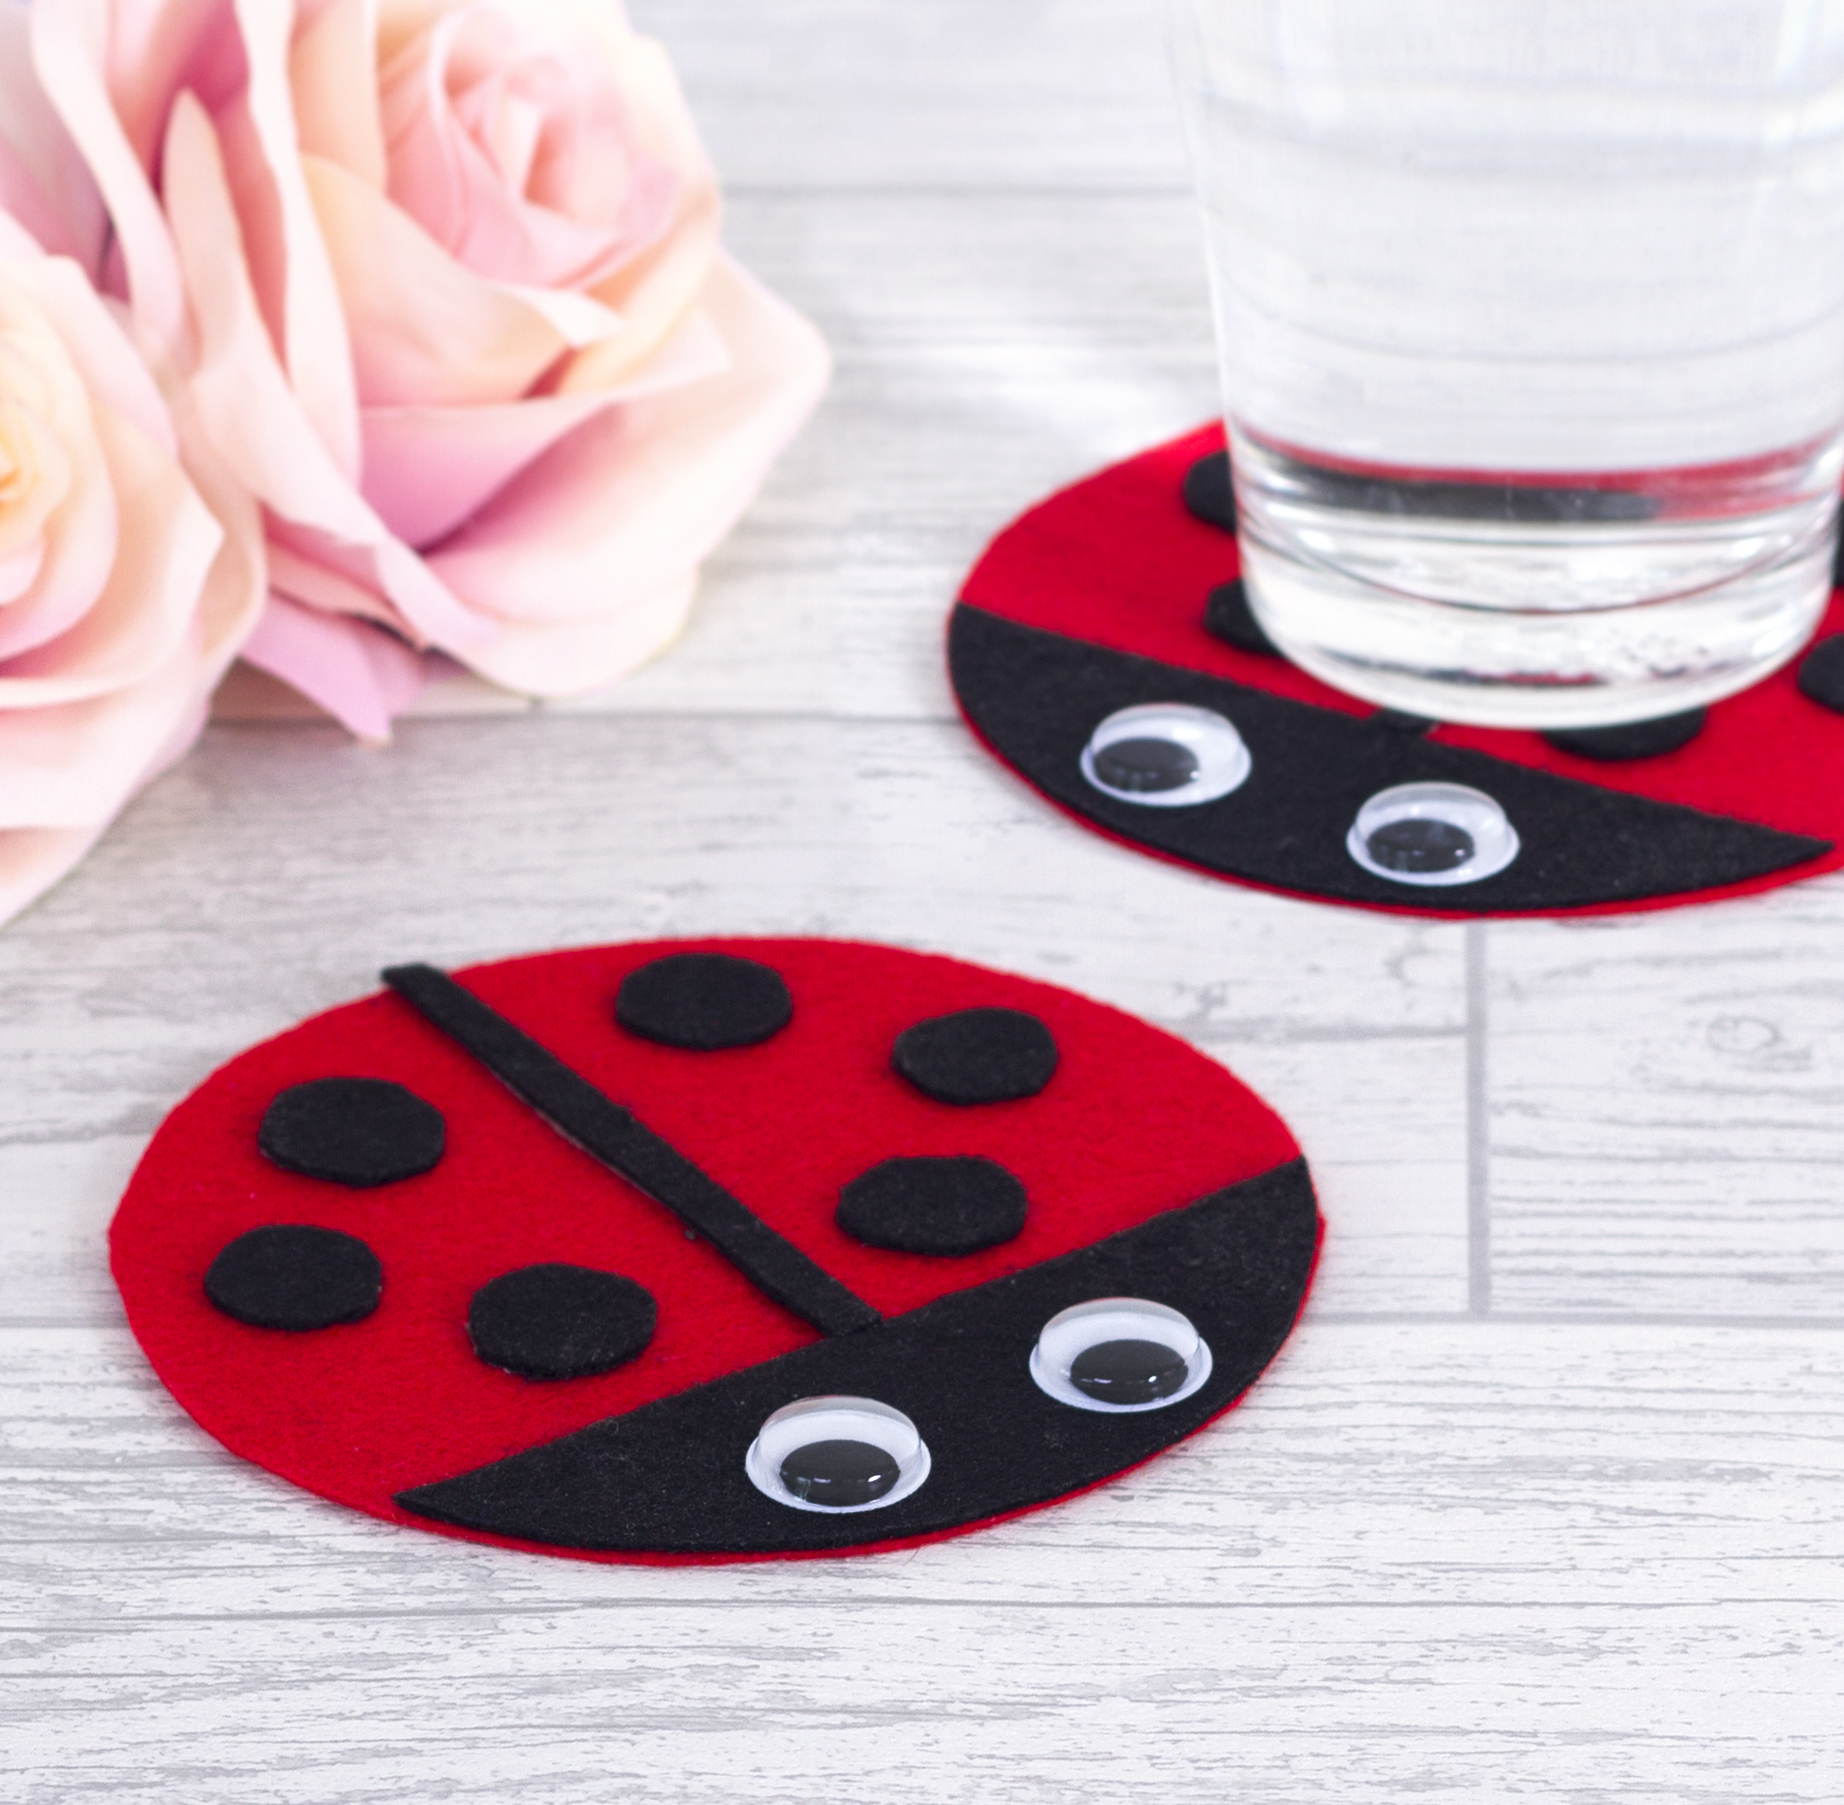 Fun ladybug coasters your kids can make!